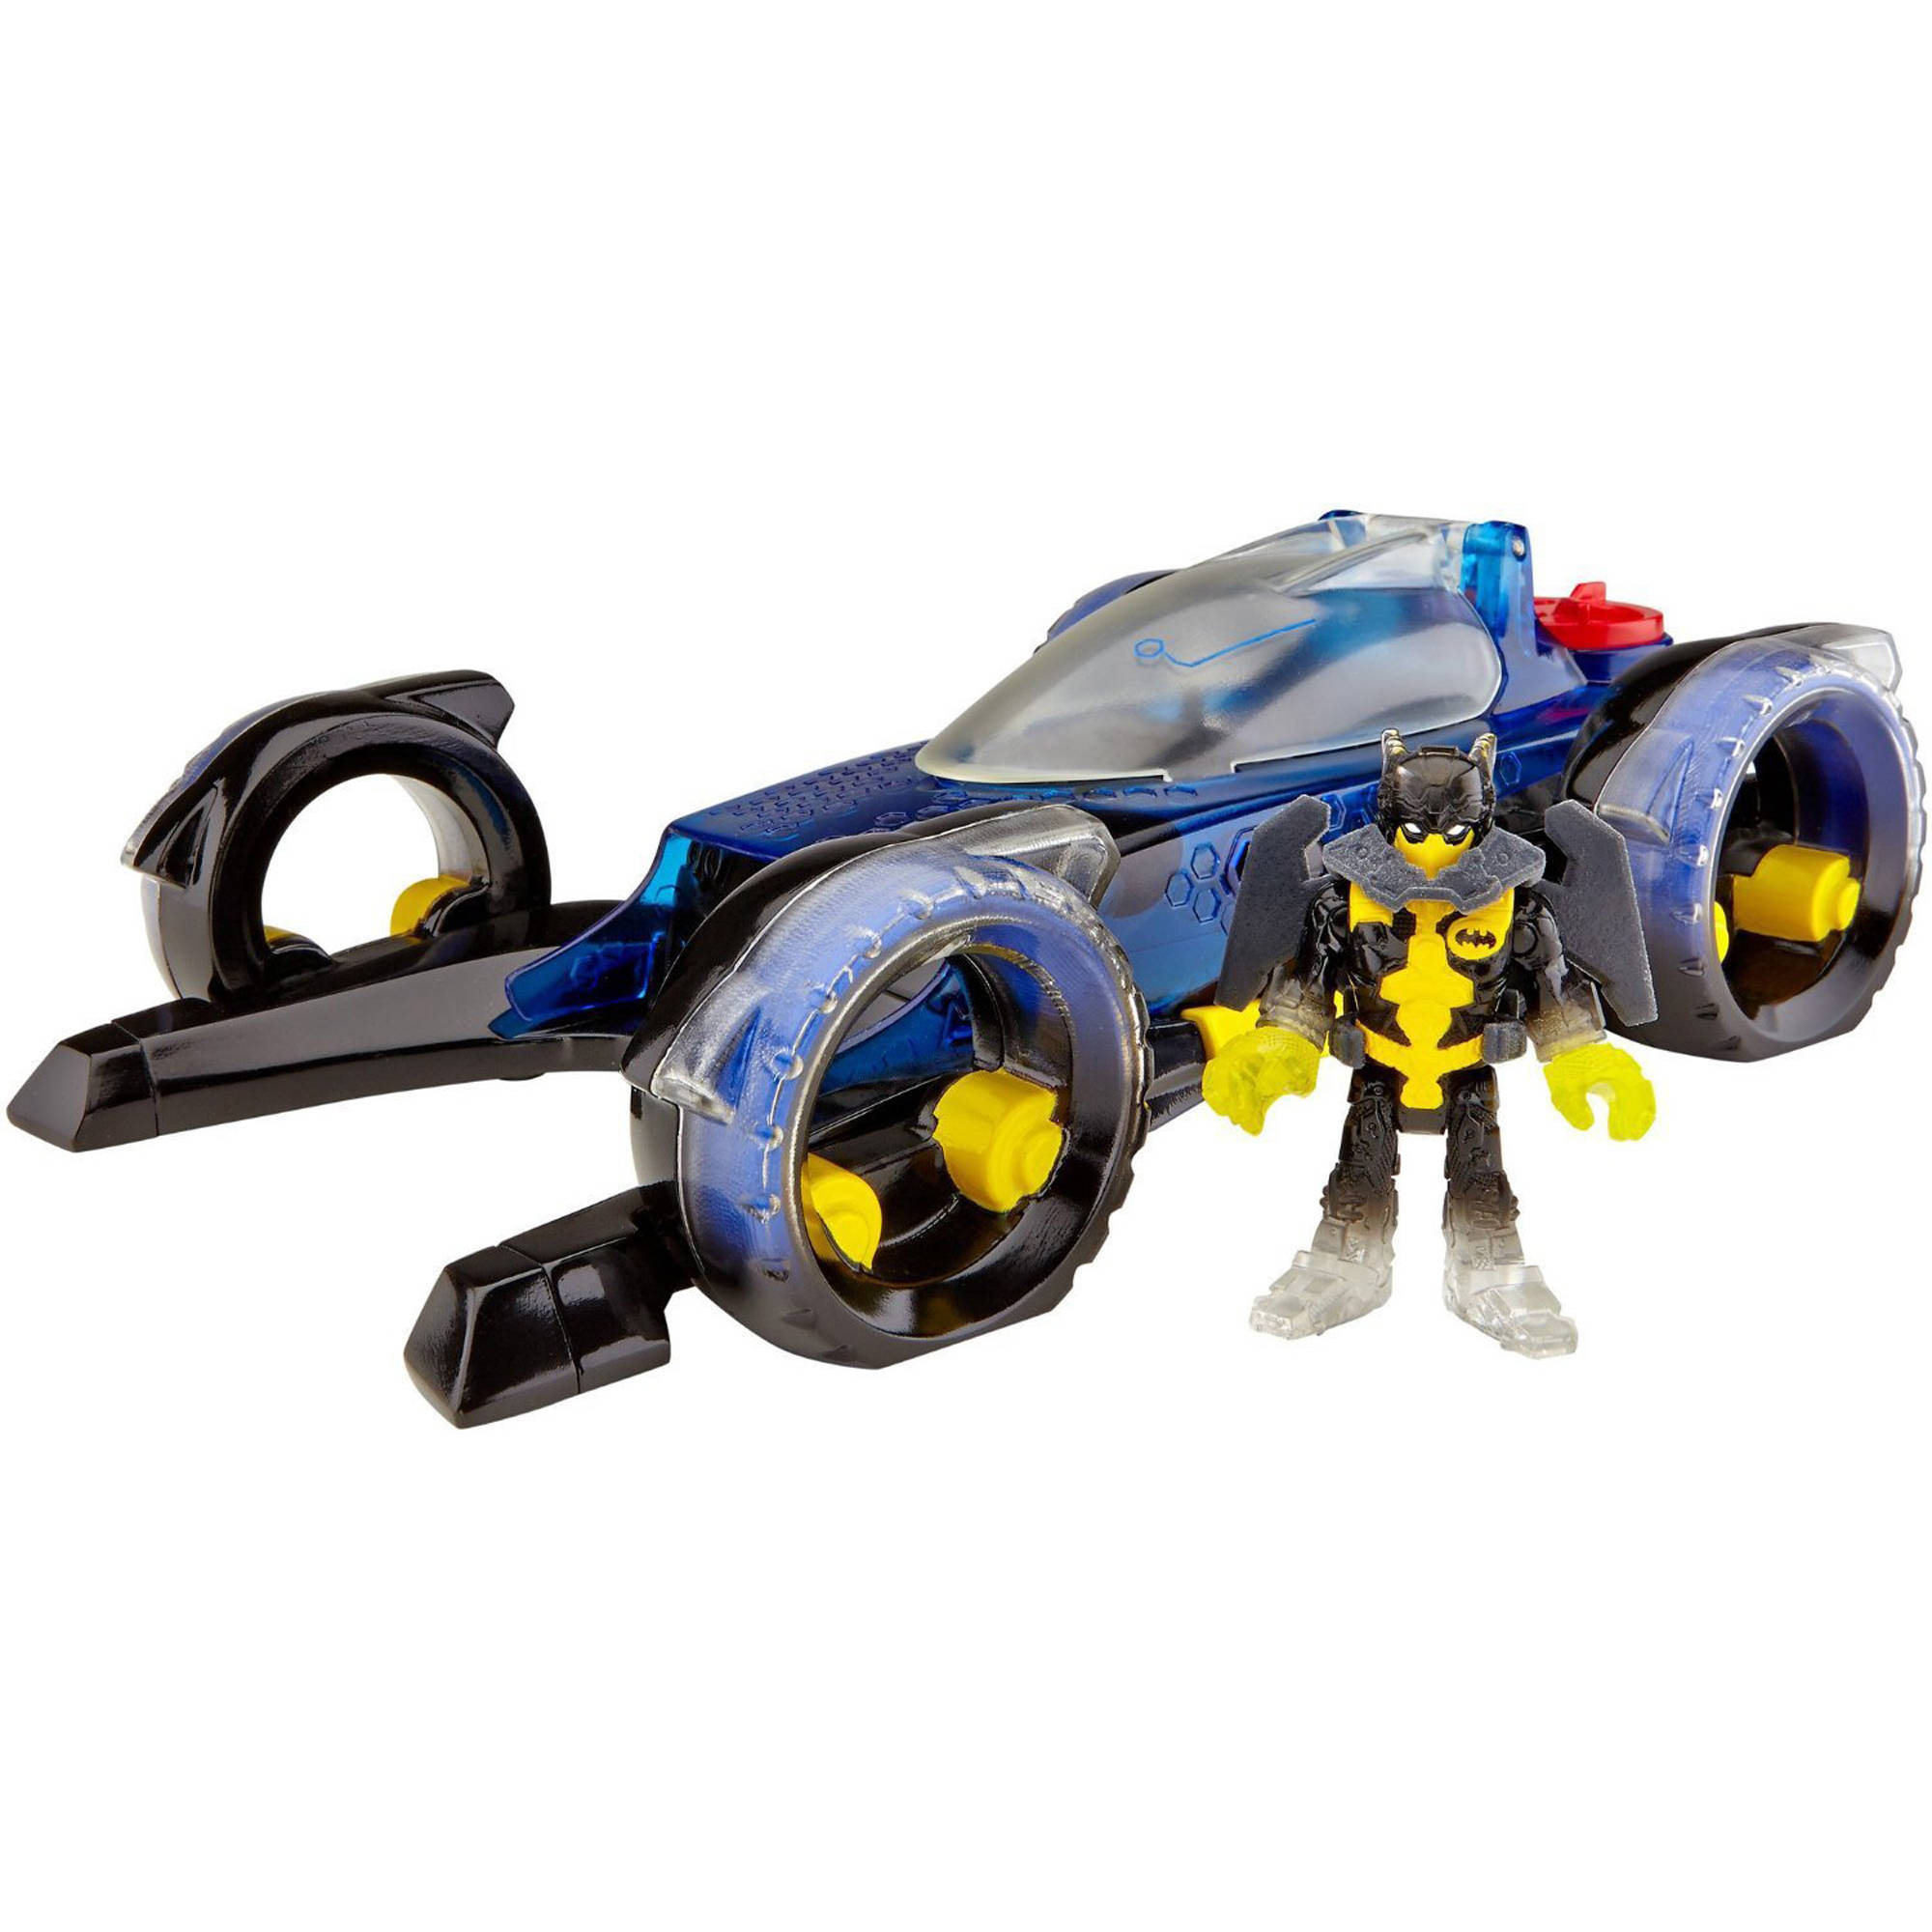 Fisher-Price Imaginext DC Super Friends Transforming Batmobile